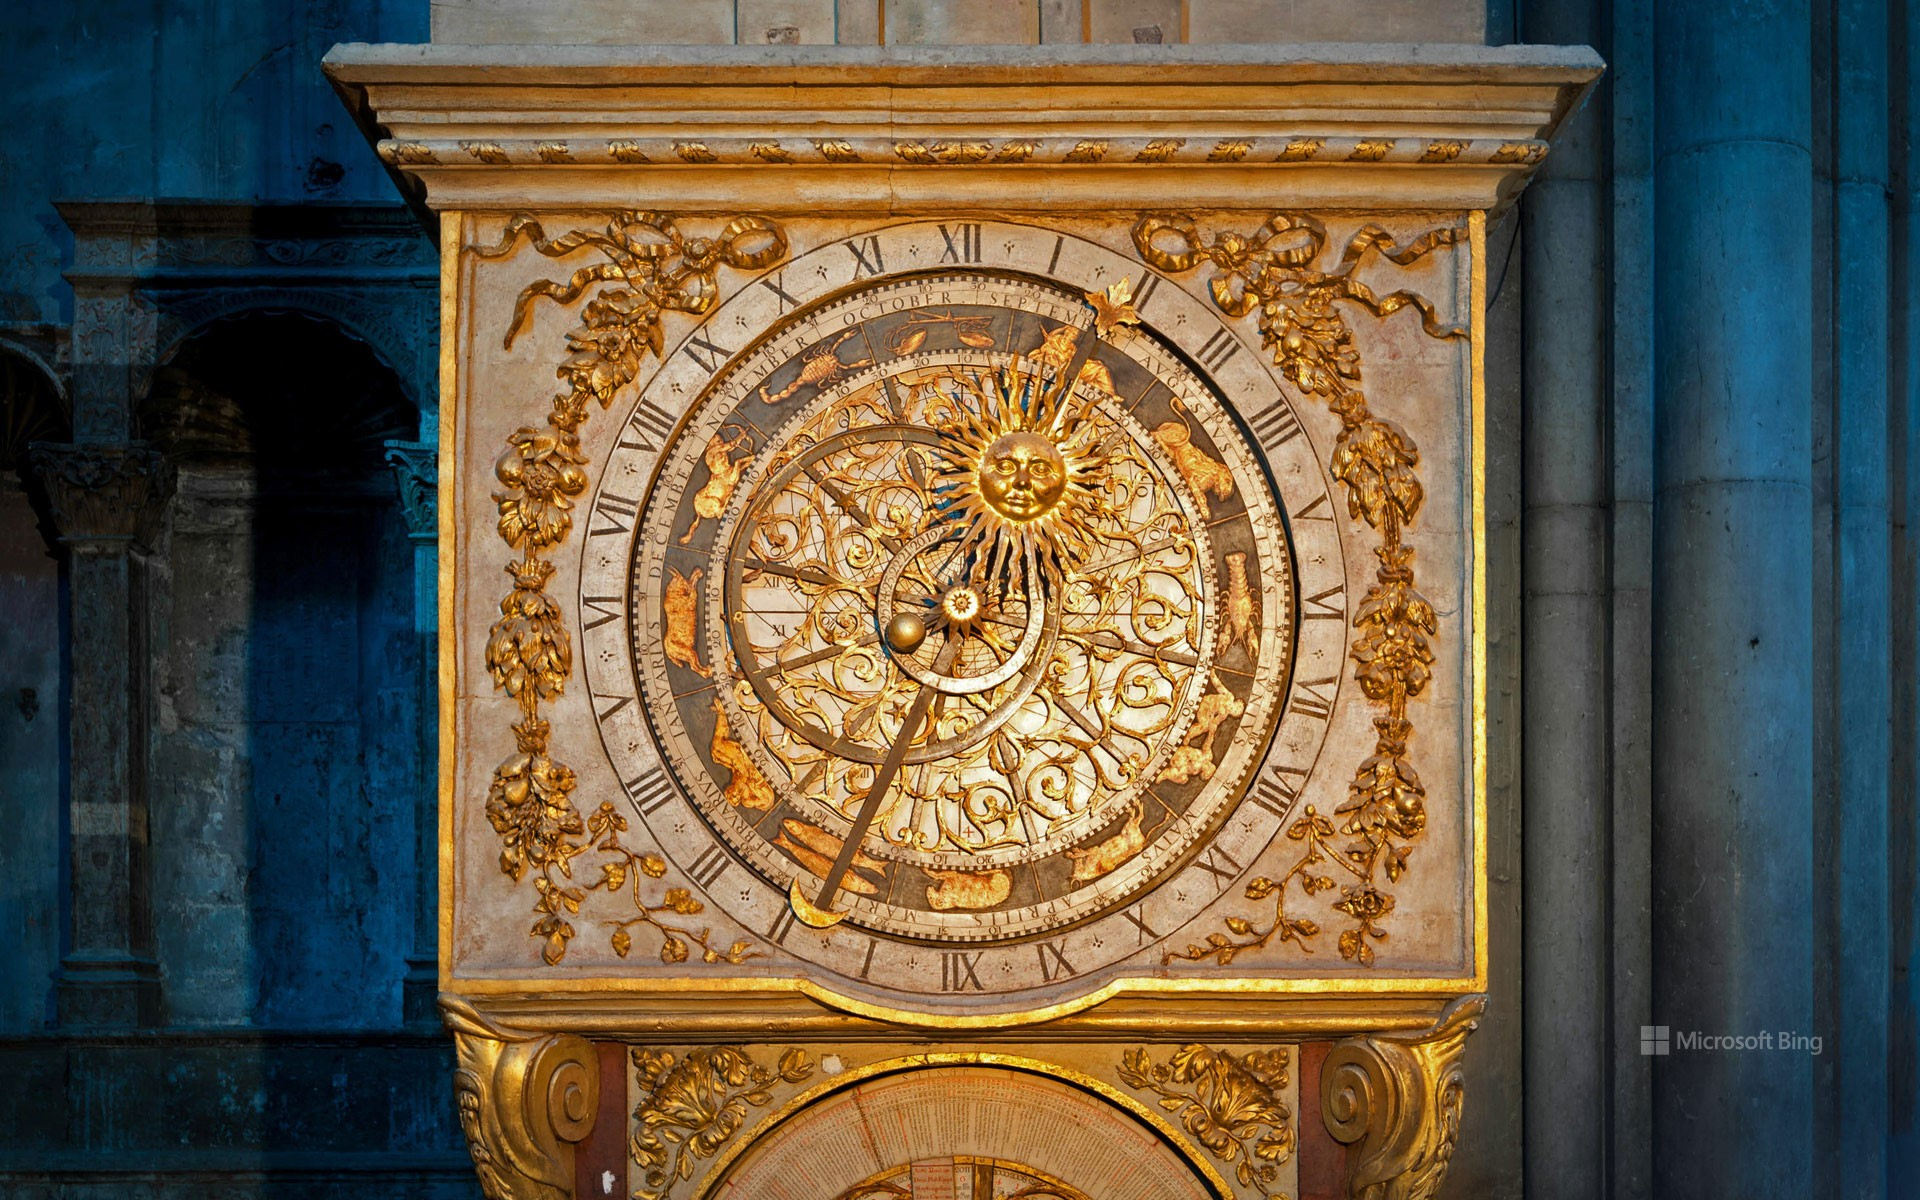 Lyon astronomical clock, Lyon, France